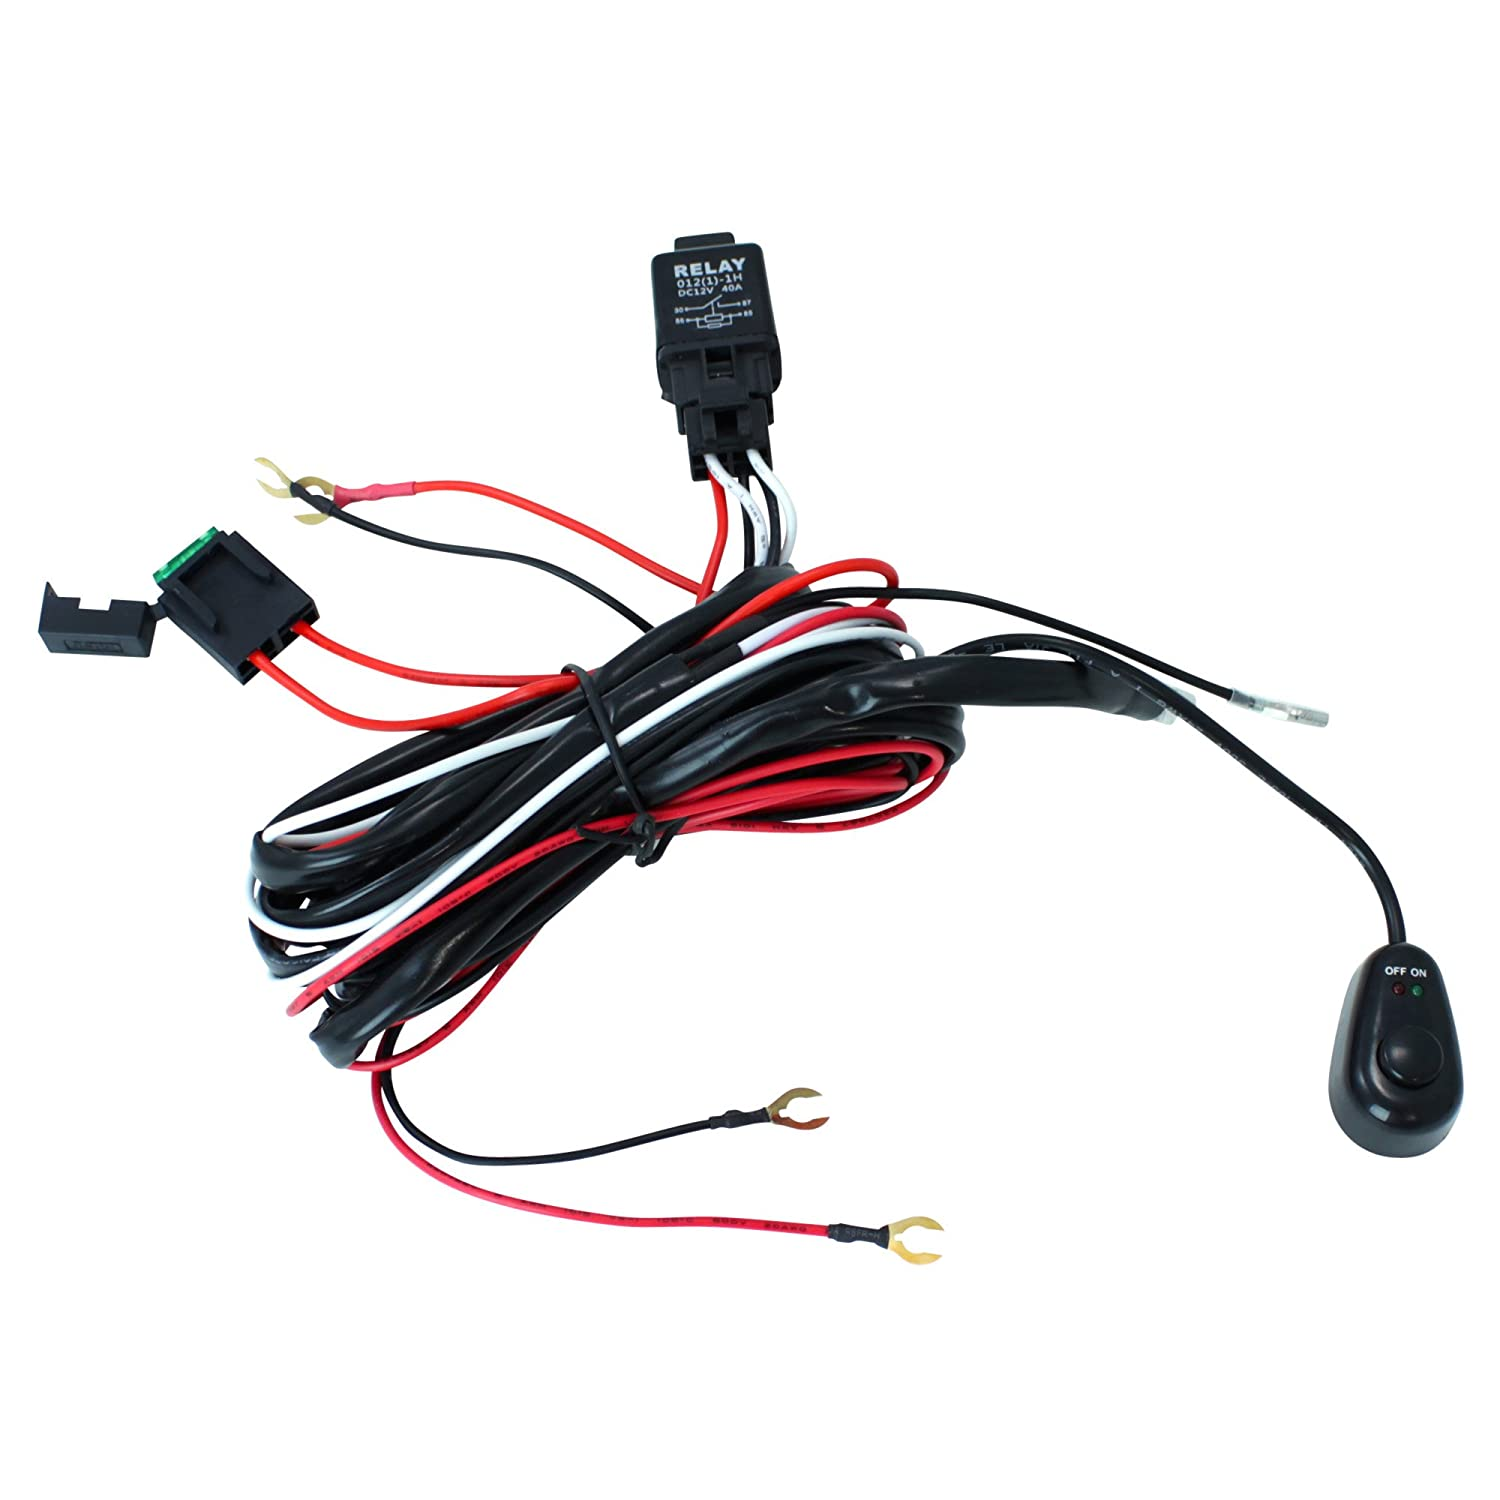 71ONjFALDCL._SL1500_ amazon com dt moto™ off road atv jeep led light bar wiring how to make a light bar wiring harness at edmiracle.co